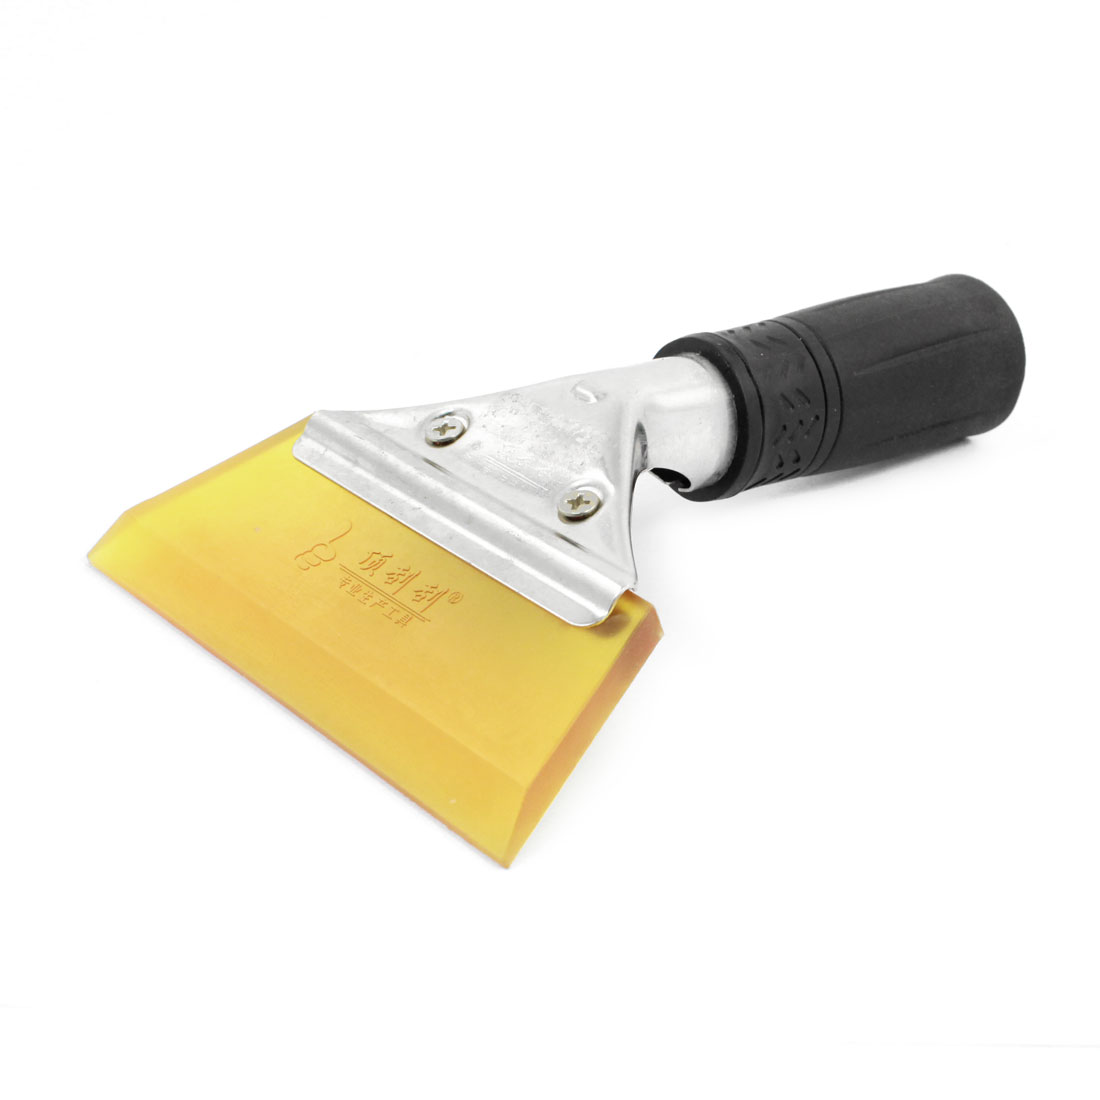 Antislip Handgrip Windscreen Window Film Rubber Blade Scraper for Car